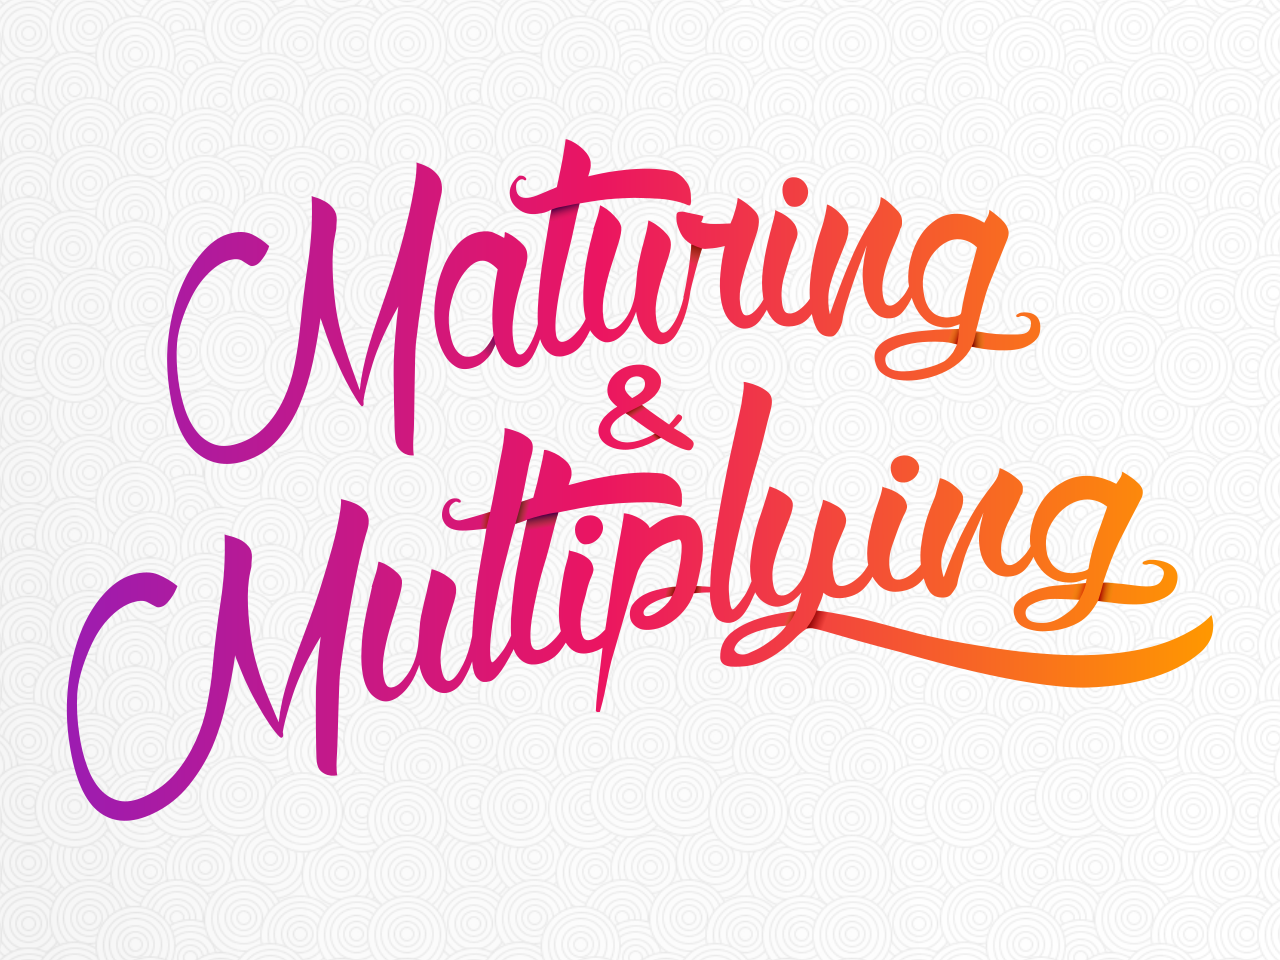 Maturing & Multiplying     August - September 2018